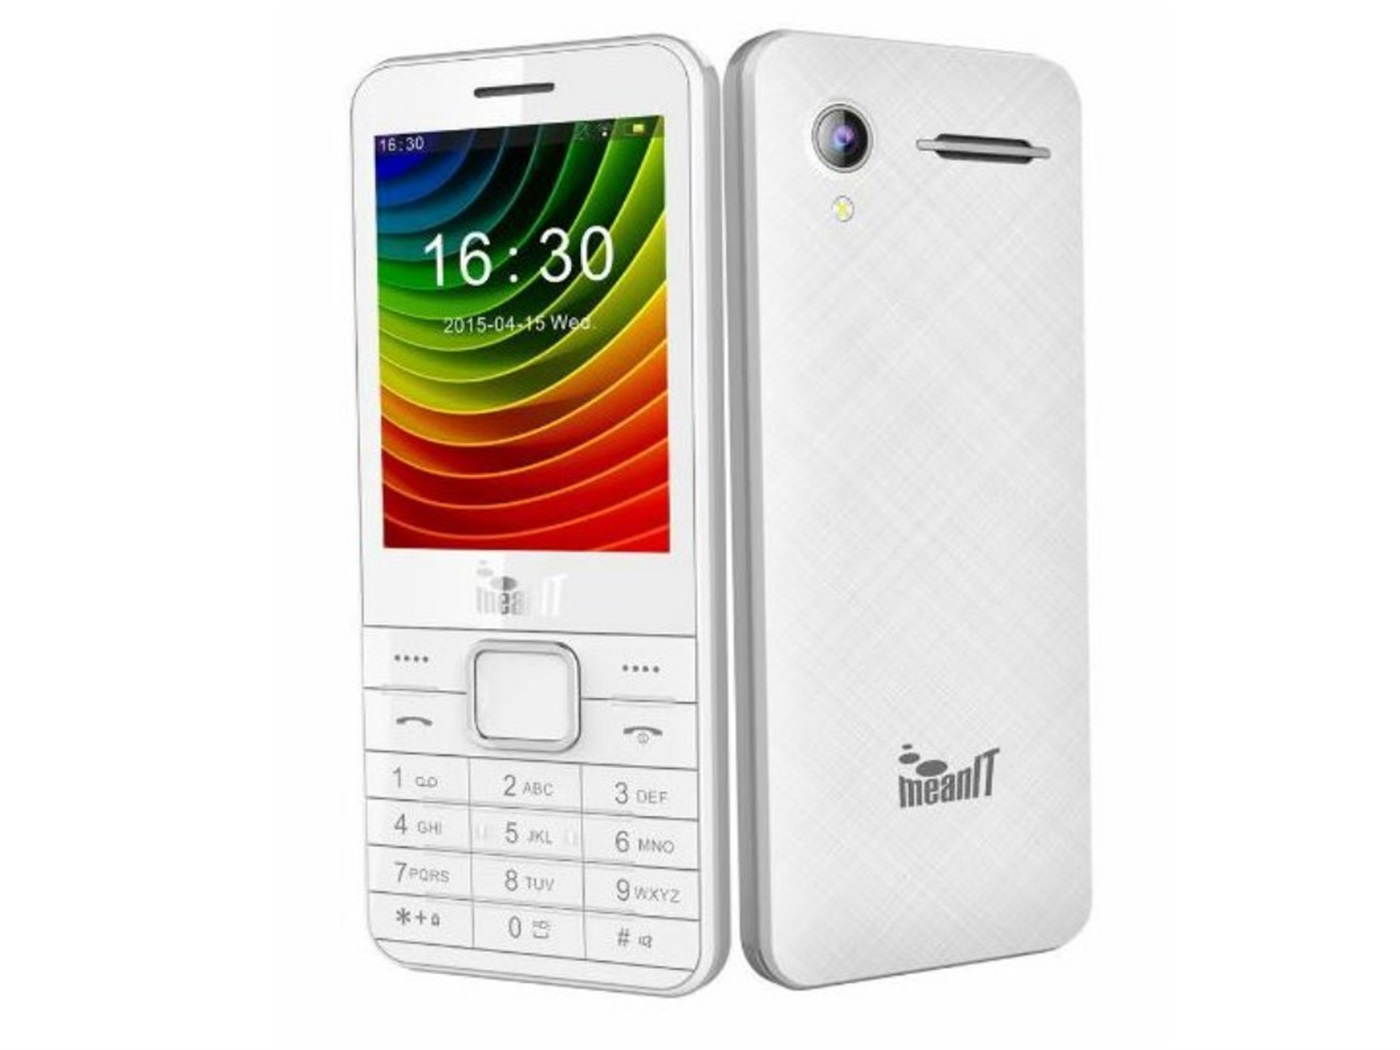 Meanit F29 DS mobitel